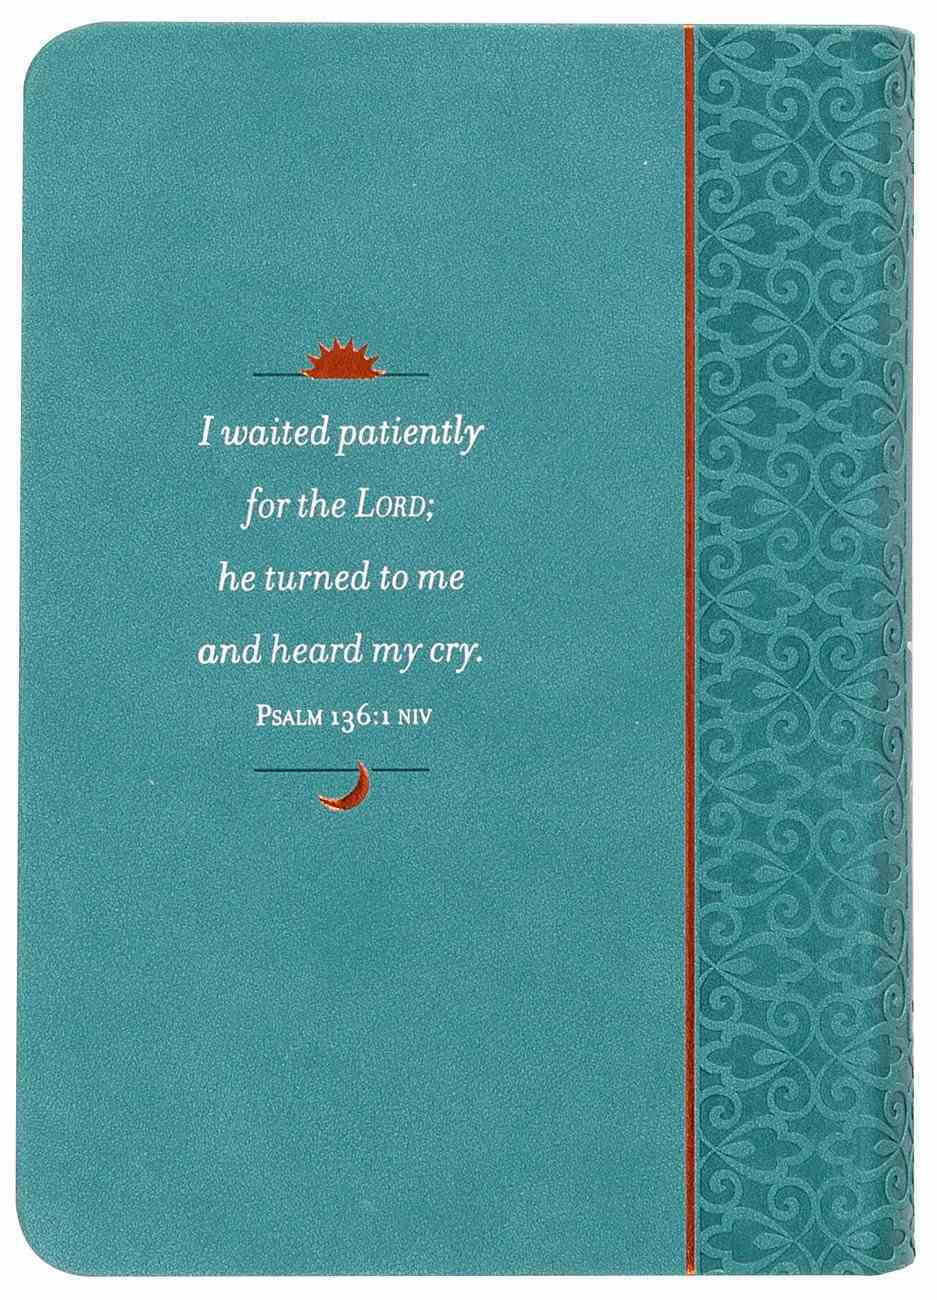 The Beloved Psalms: Morning and Evening Devotional Imitation Leather